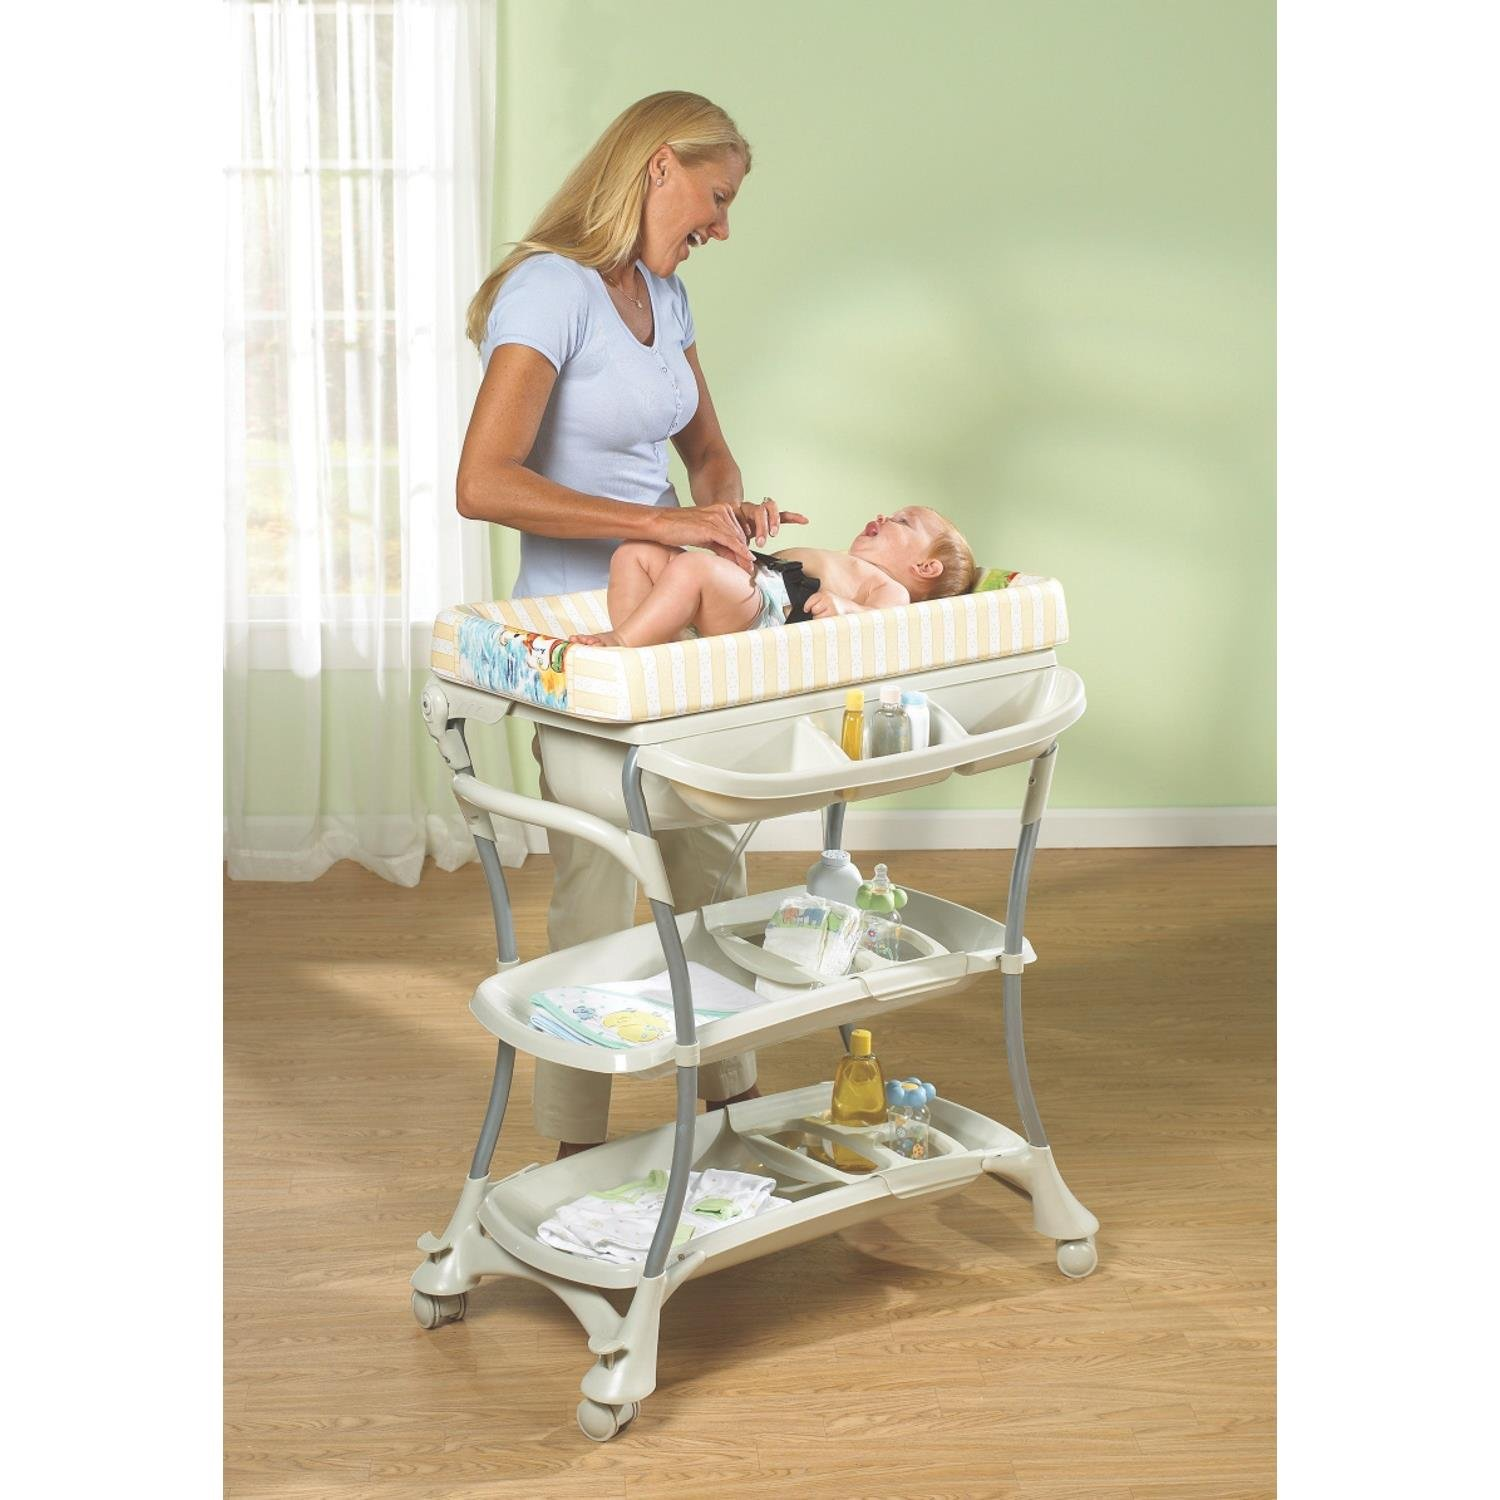 Beautiful Amazon.com: Primo Euro Spa Baby Bath And Changing Table: Health U0026 Personal  Care